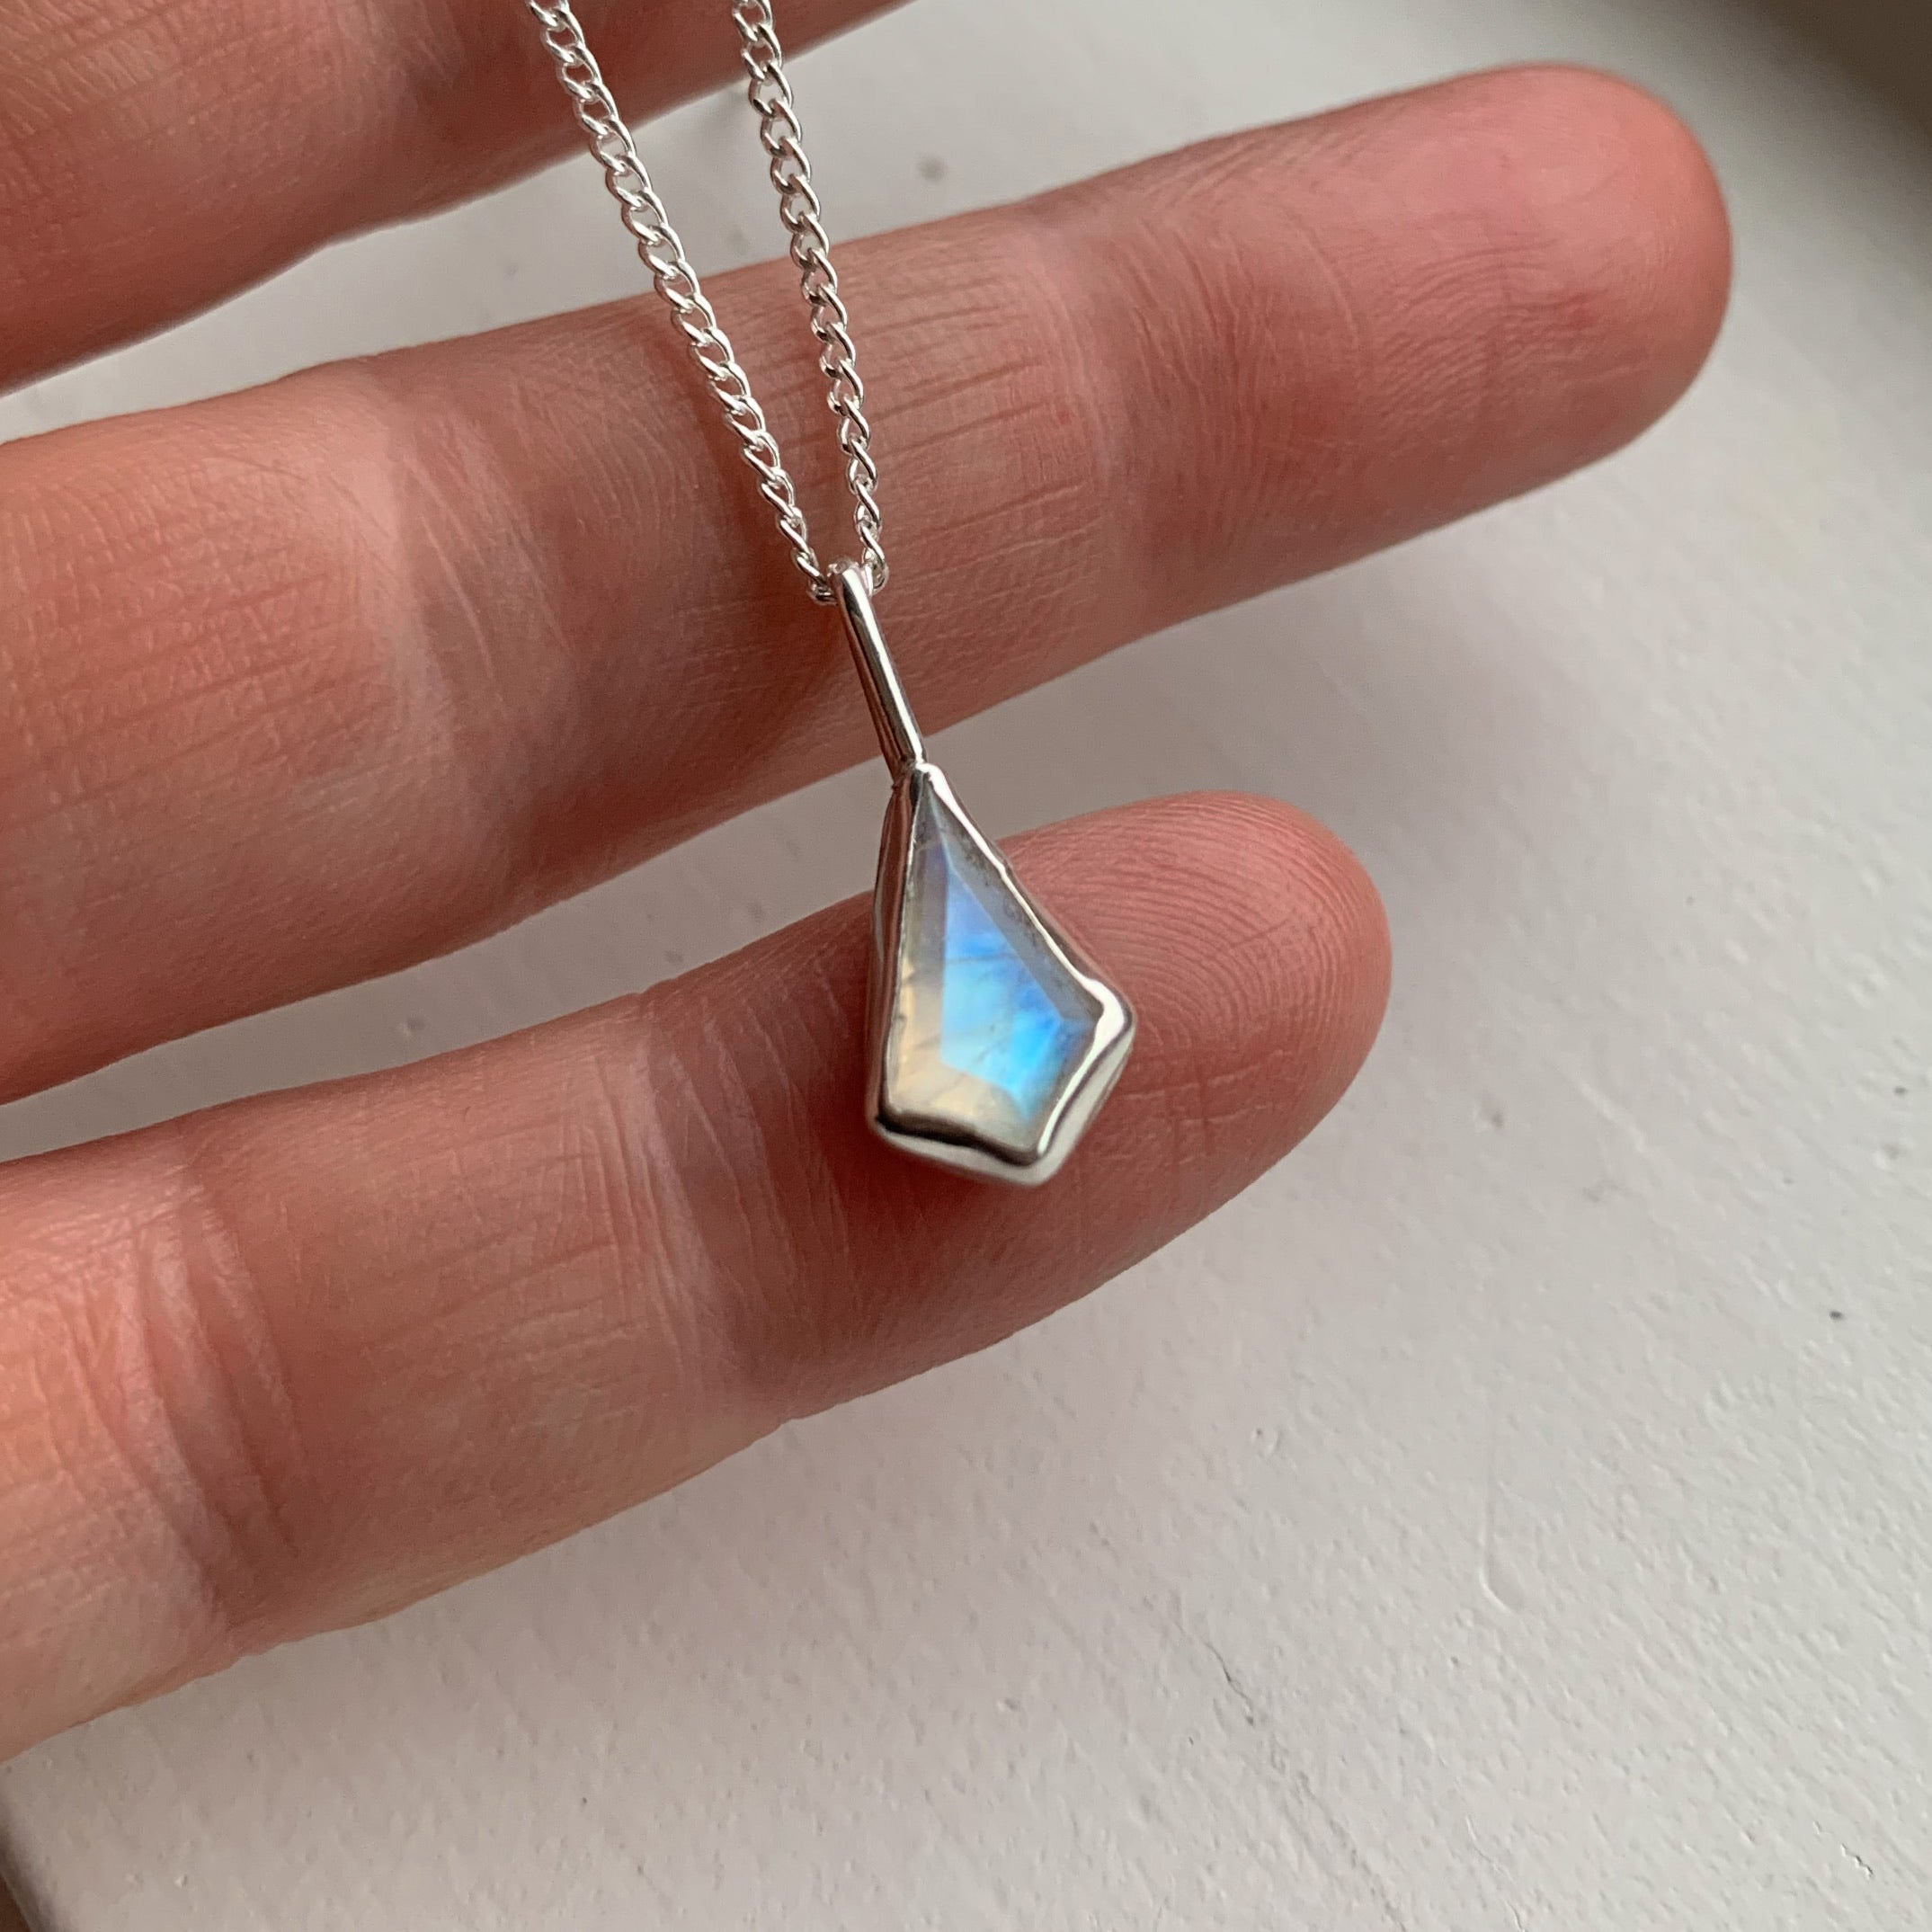 Kite necklace - silver